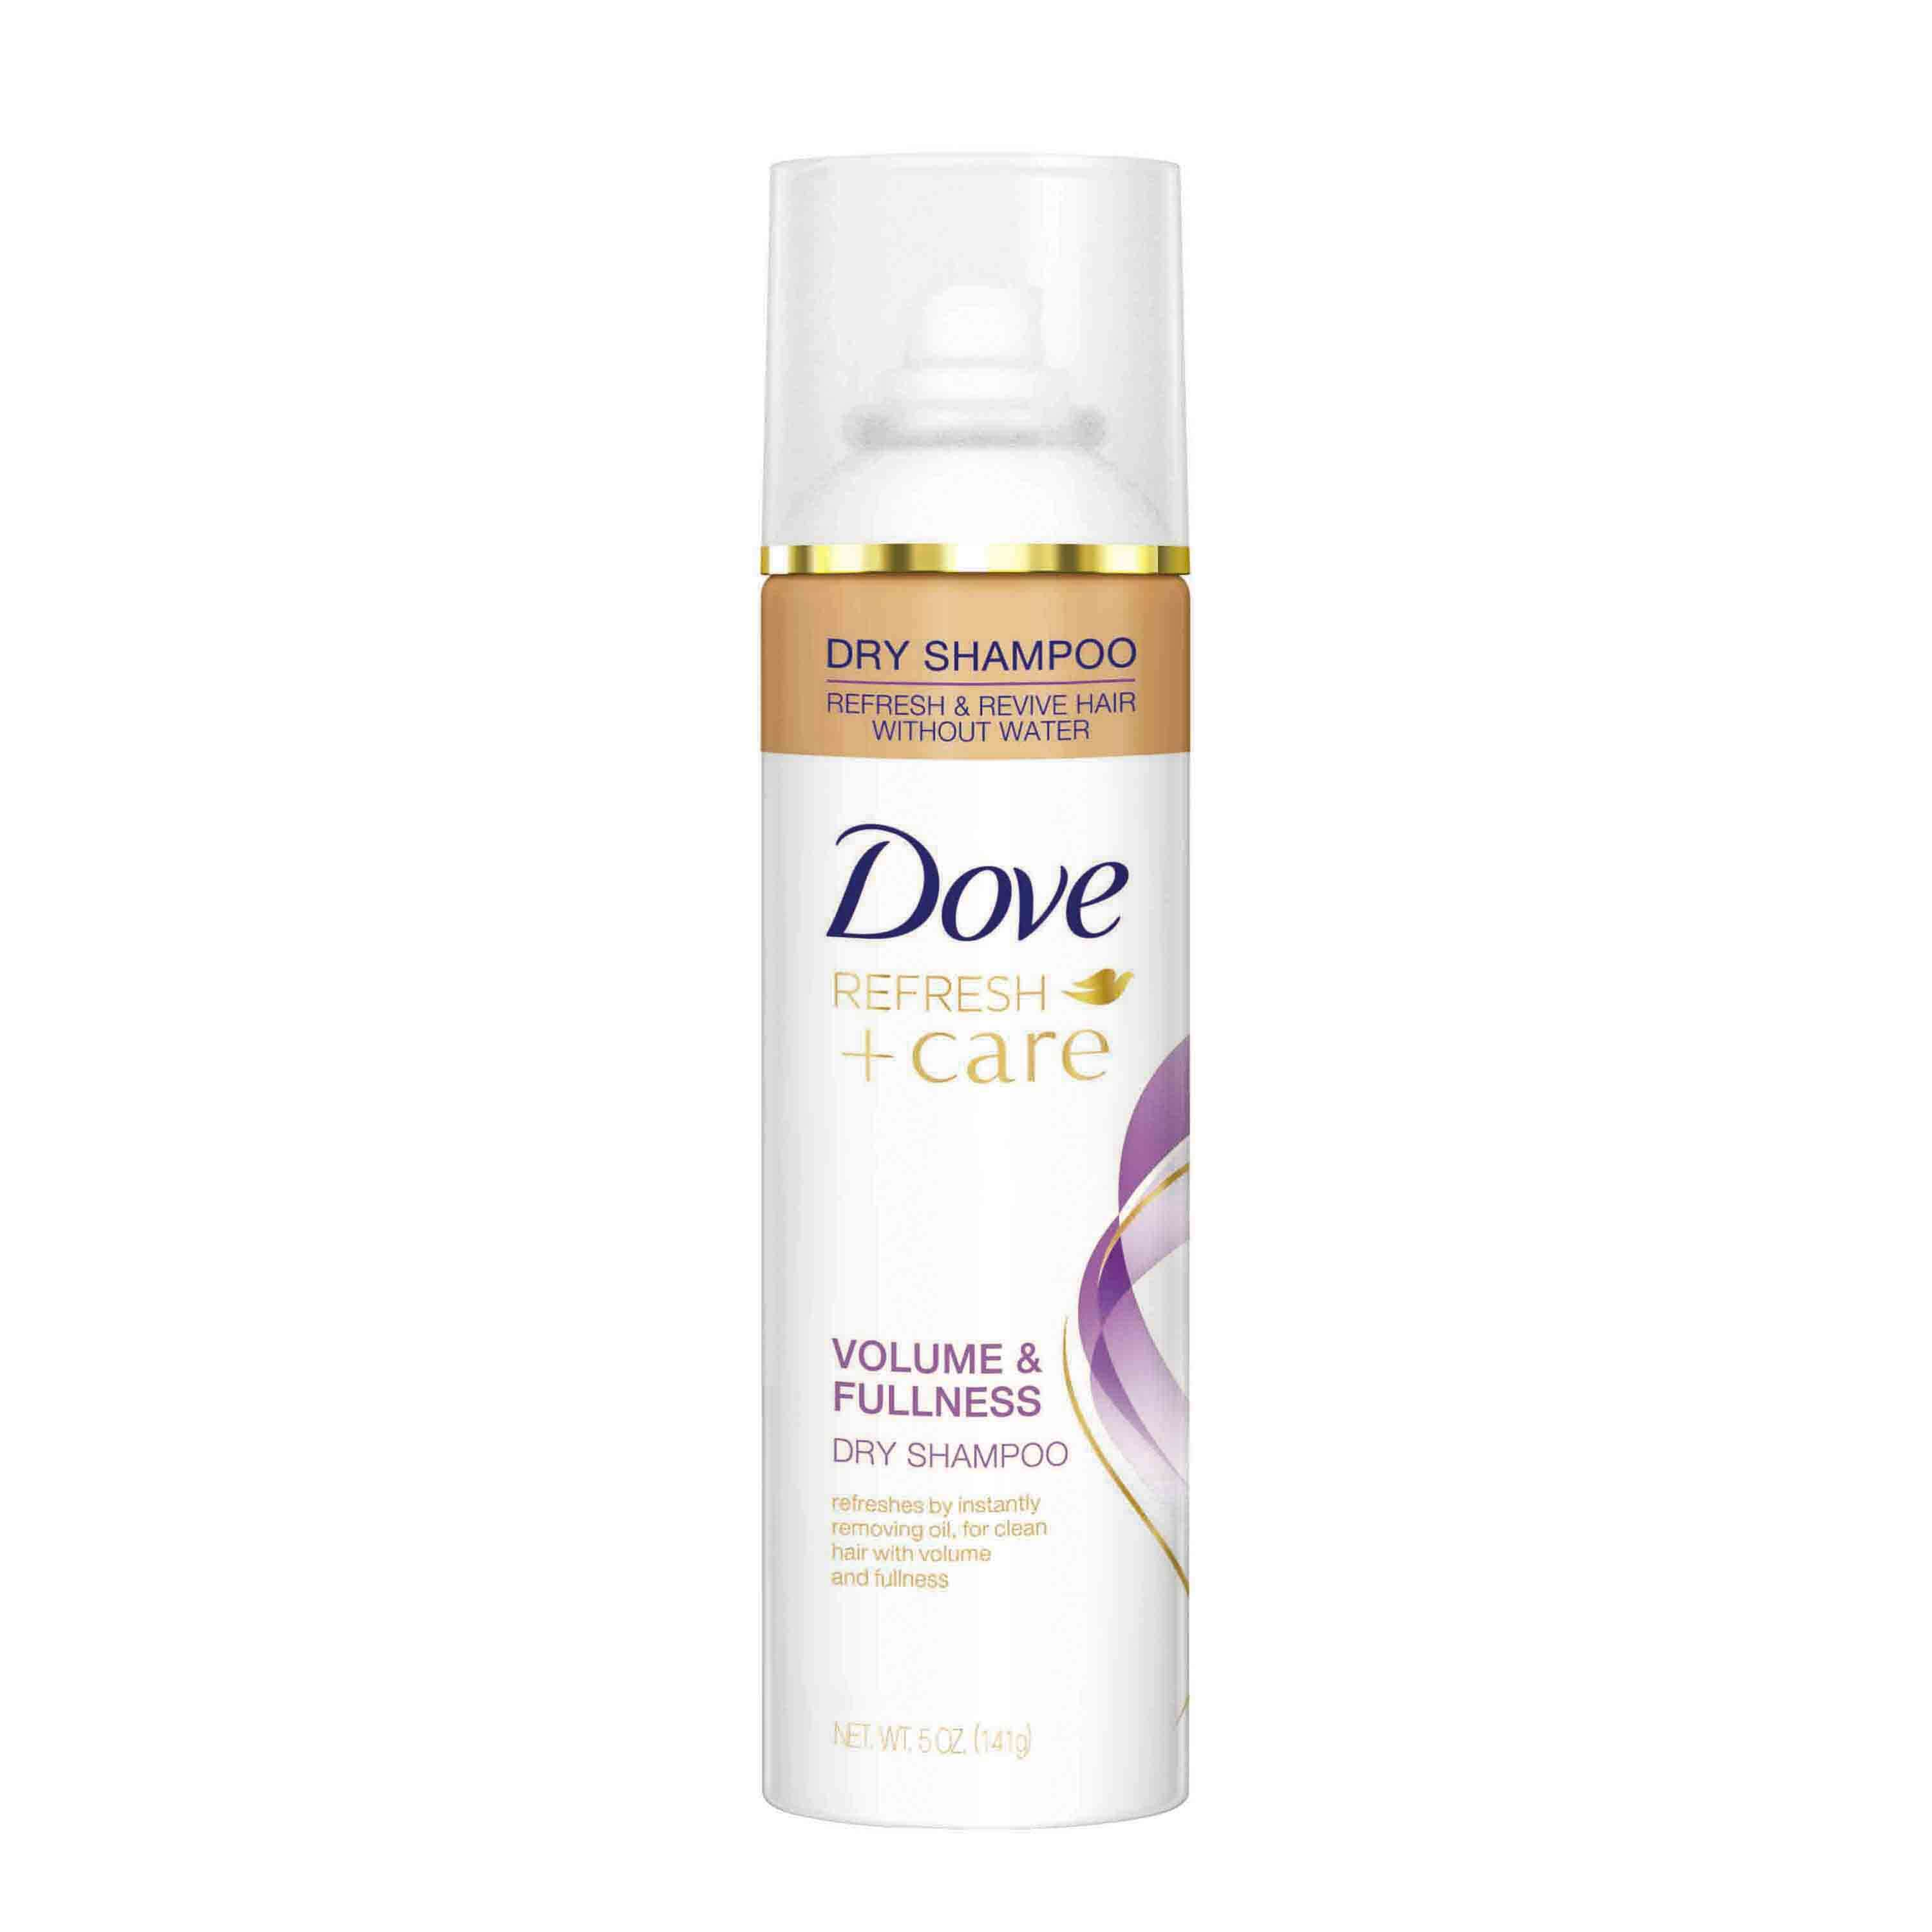 product life cycle of dove shampoo The decline stage in the product life cycle is when a product dissolves as a result of decreased or negative growth it is a result of lower demand, which ultimately results from new inventions.